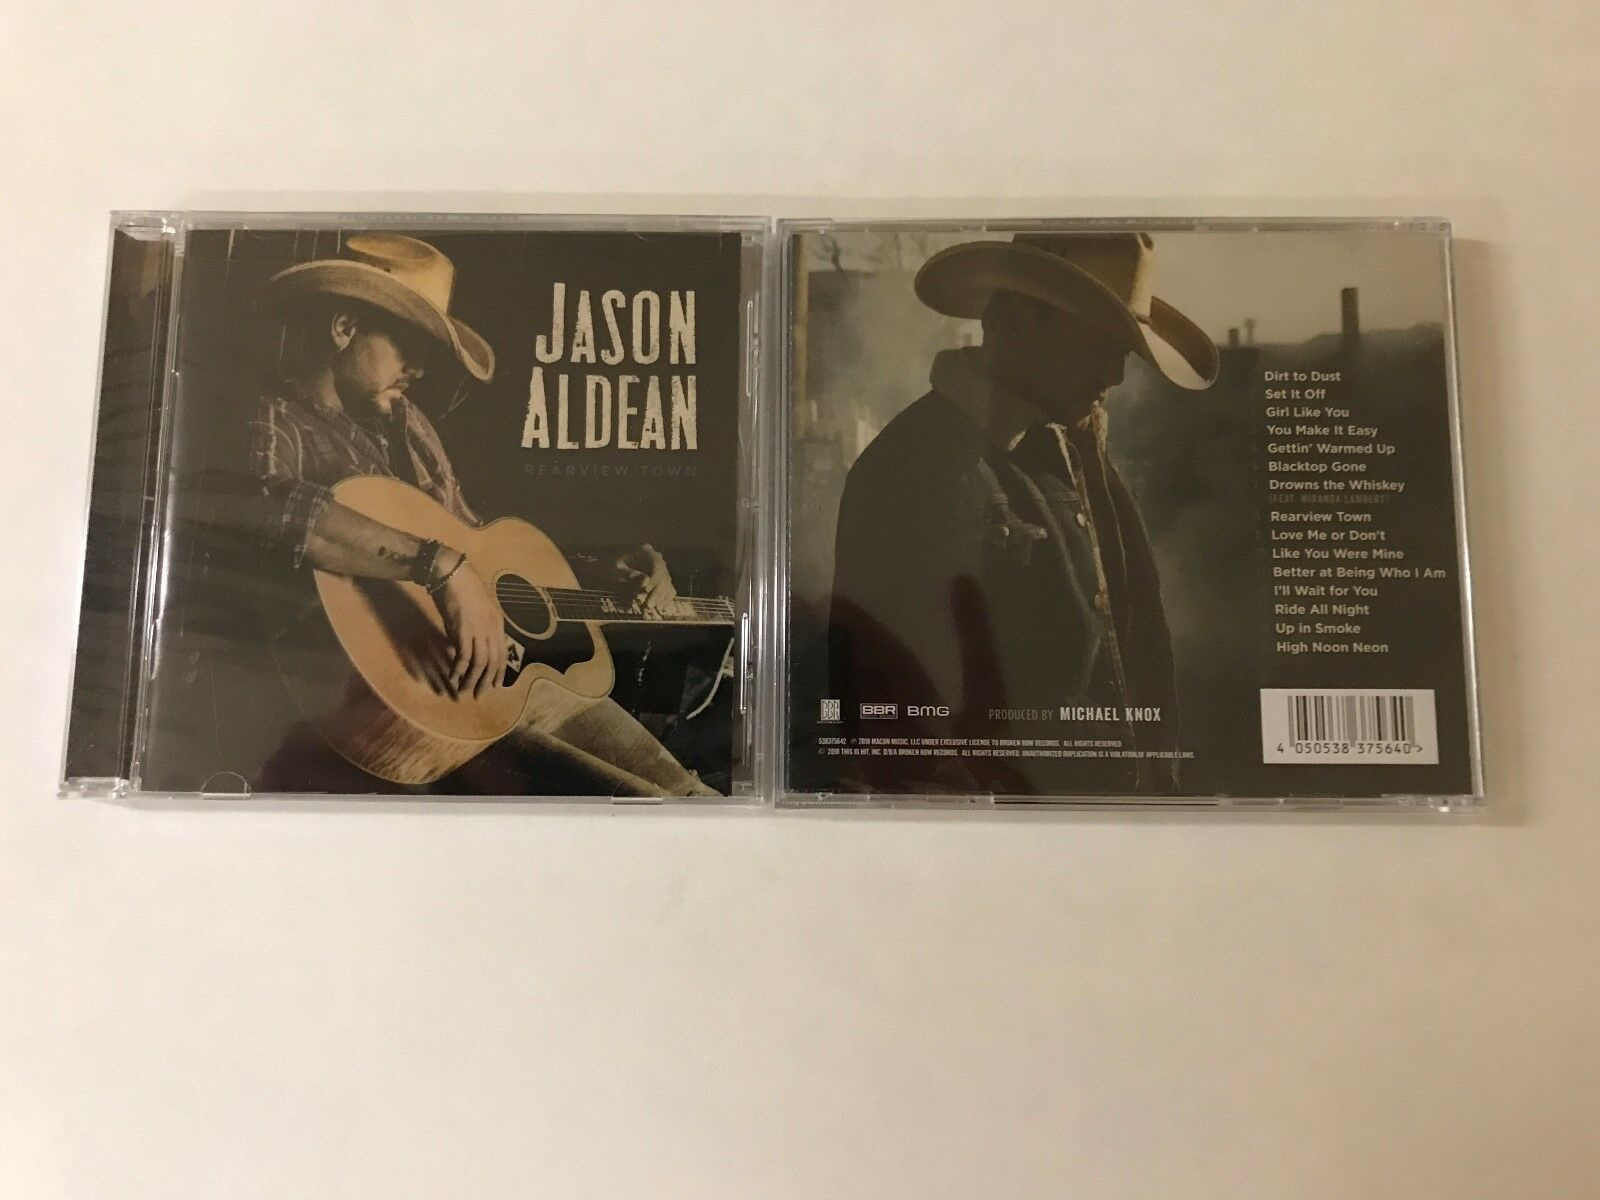 REARVIEW TOWN BY JASON ALDEAN - APRIL 2018 RELEASE 100% AUTHENTIC FACTORY SEALED